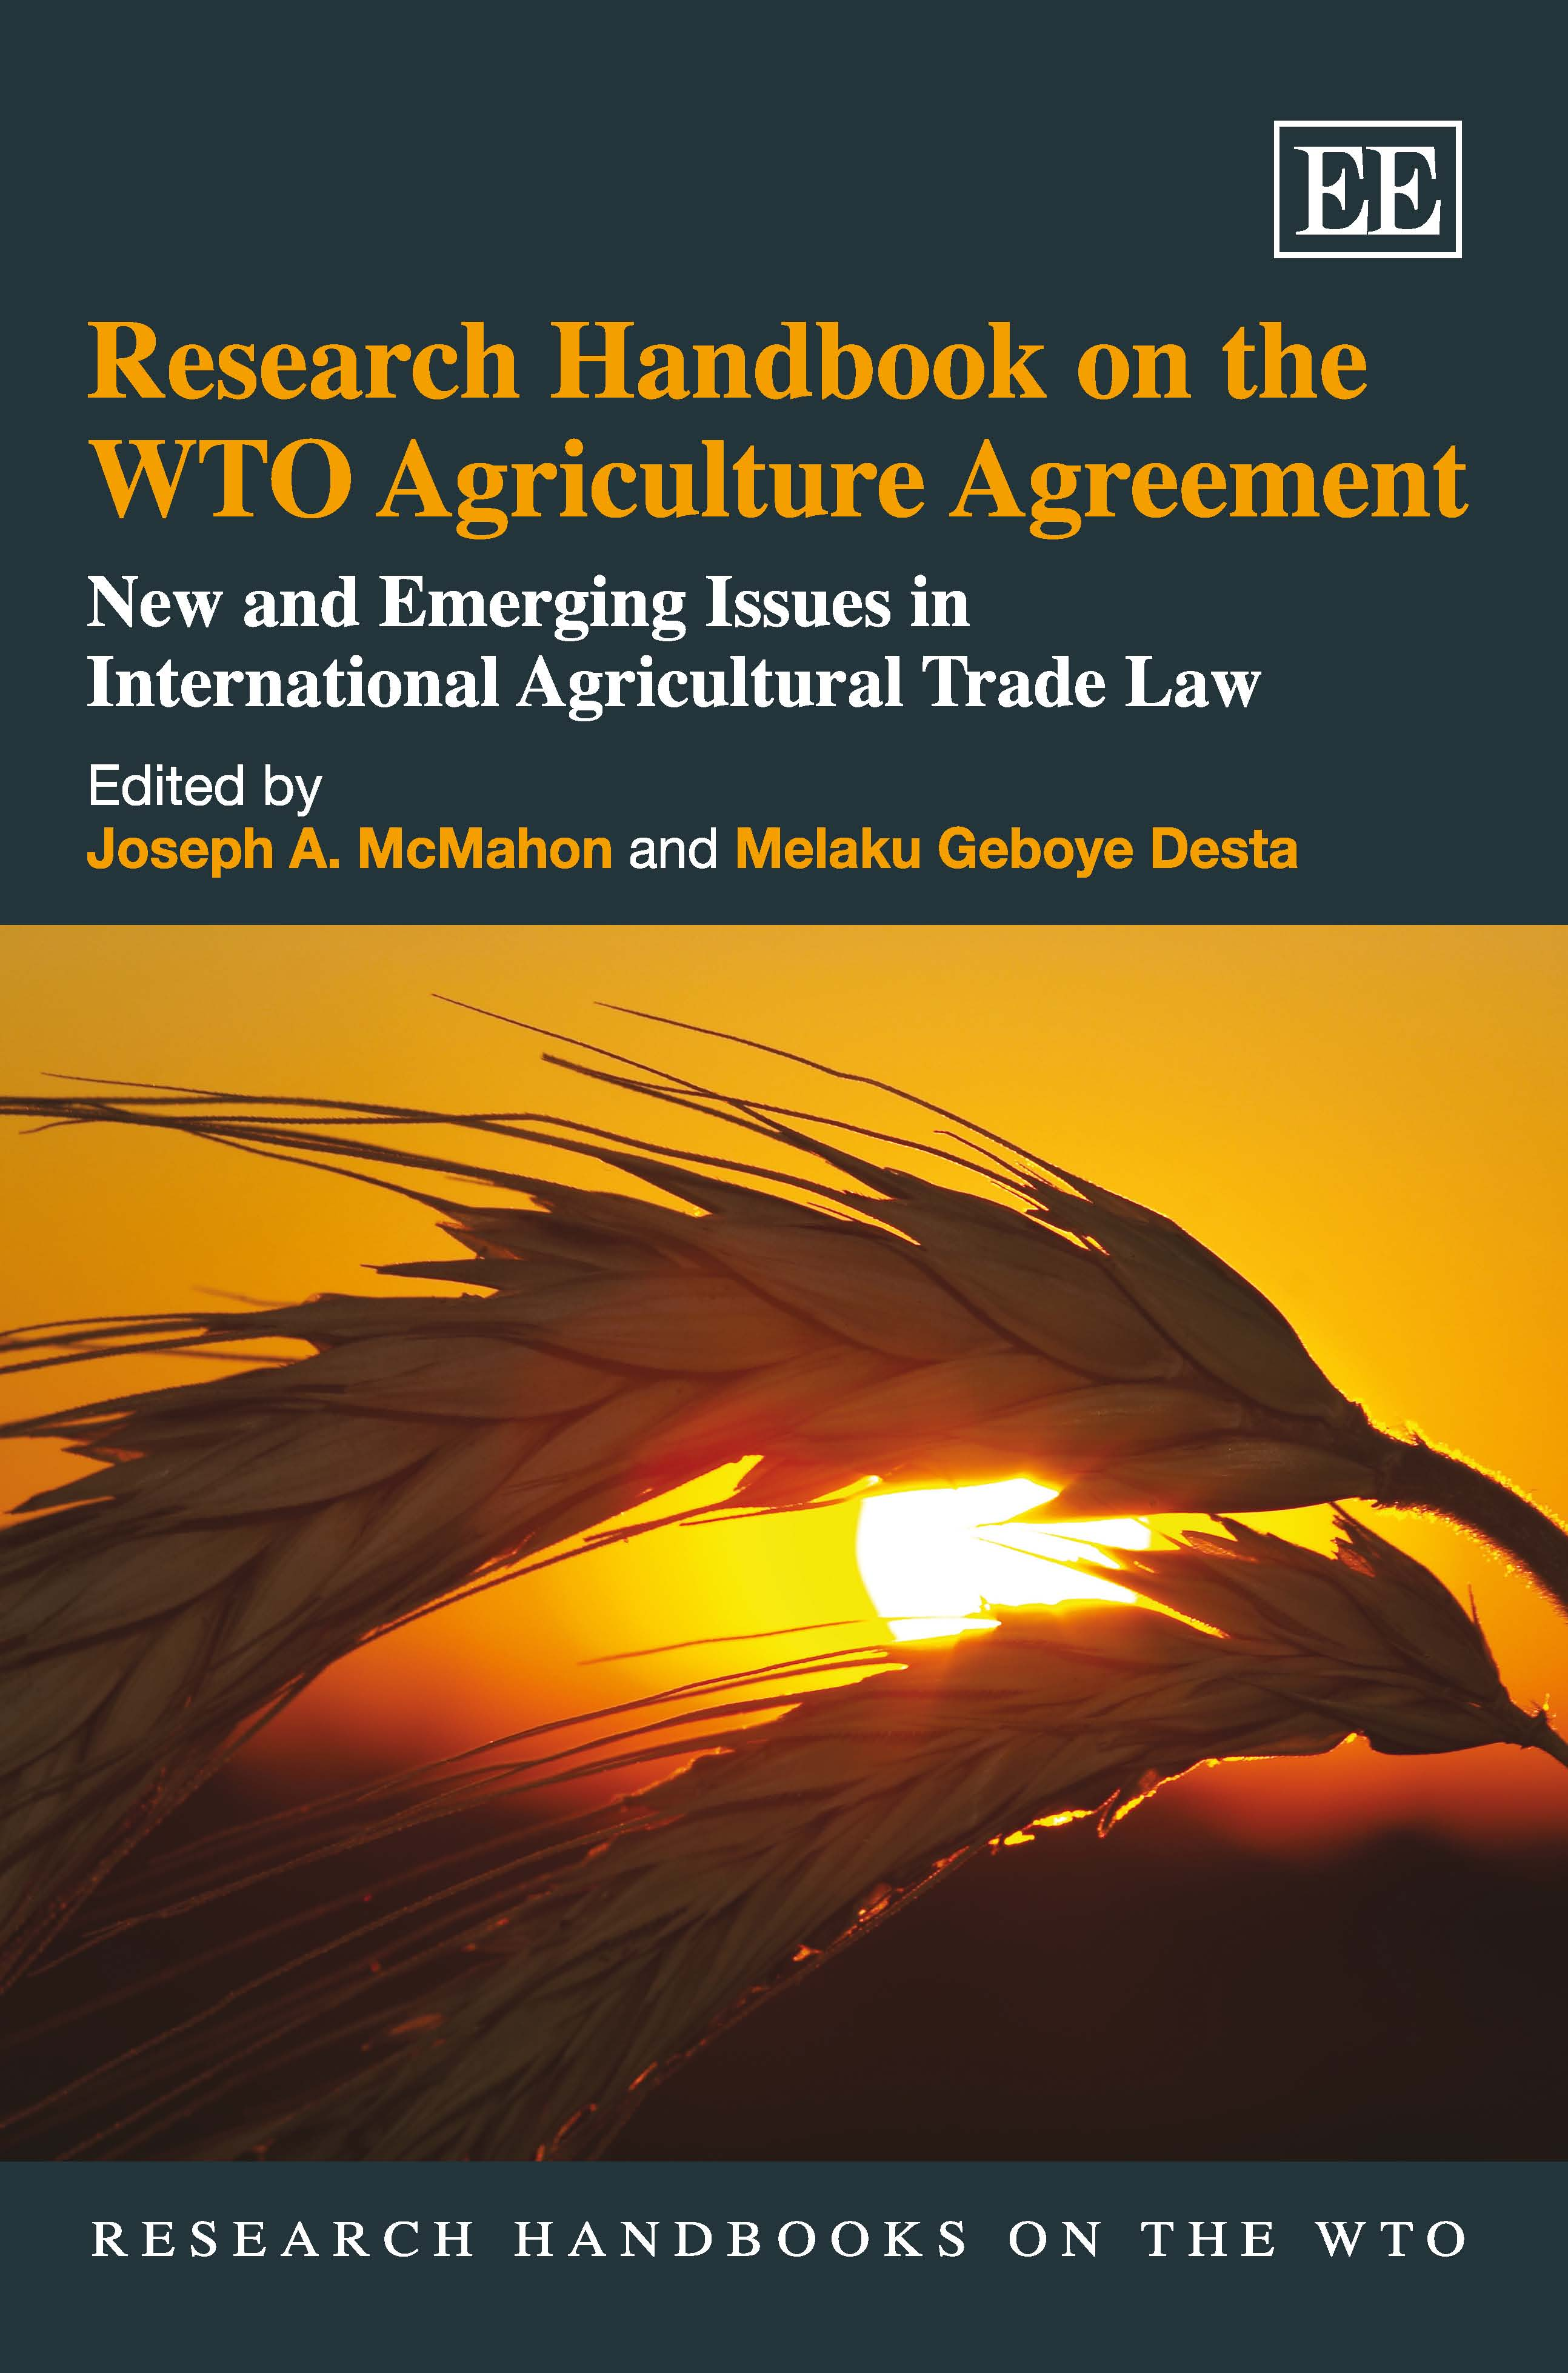 Research Handbook on the WTO Agriculture Agreement